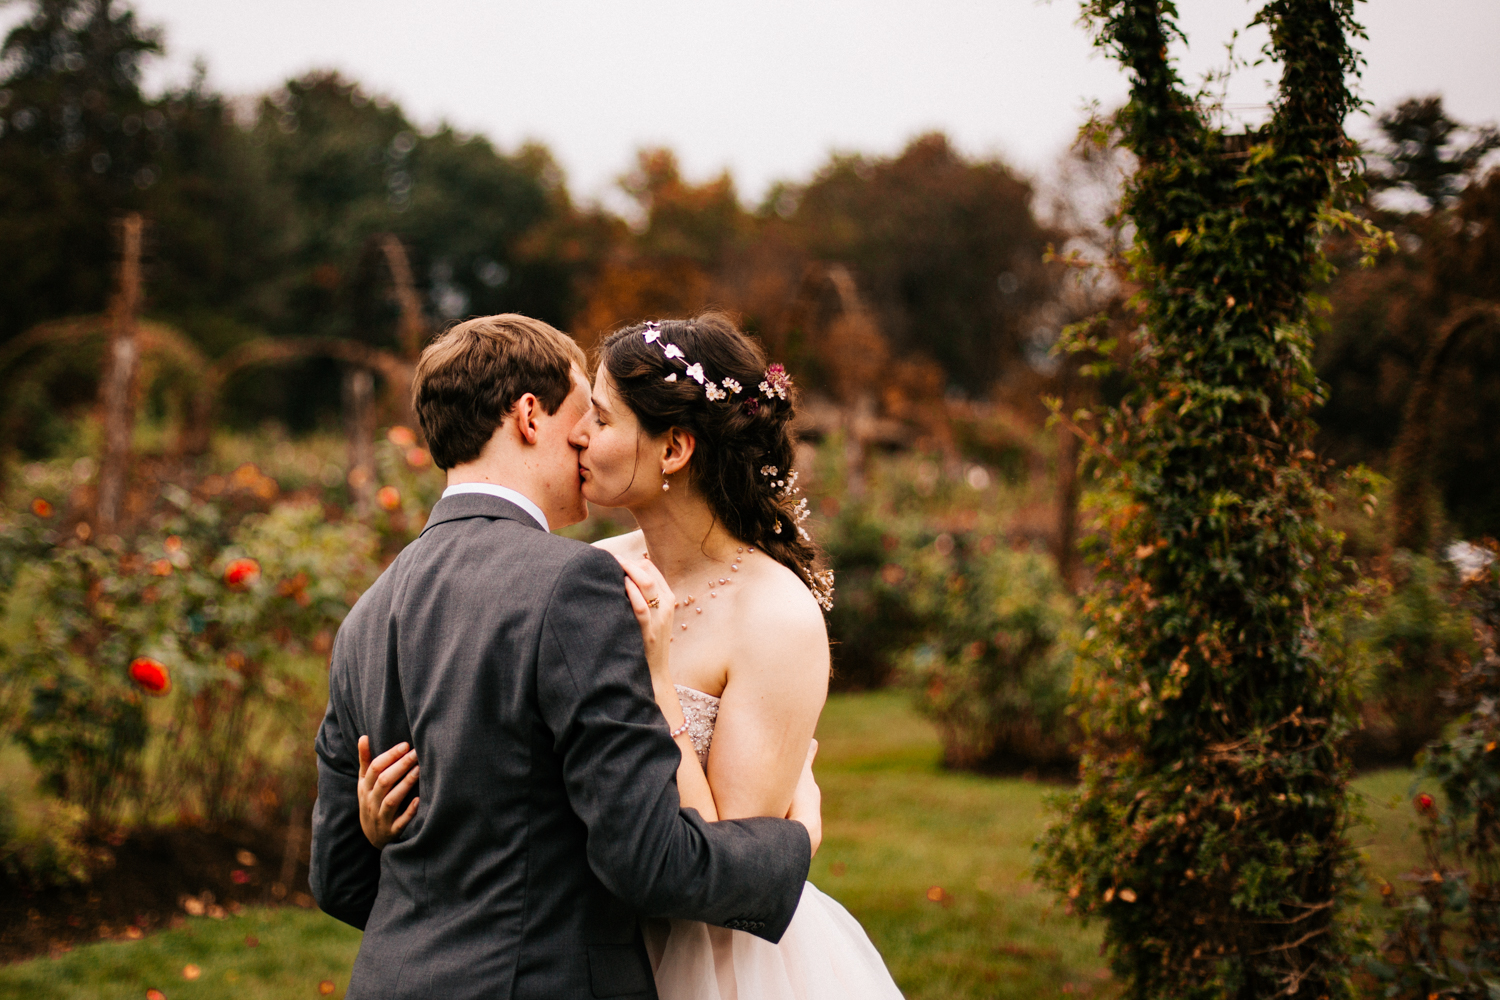 bride-groom-new-england-wedding-photographer-boston-autumn-october-wedding.jpg